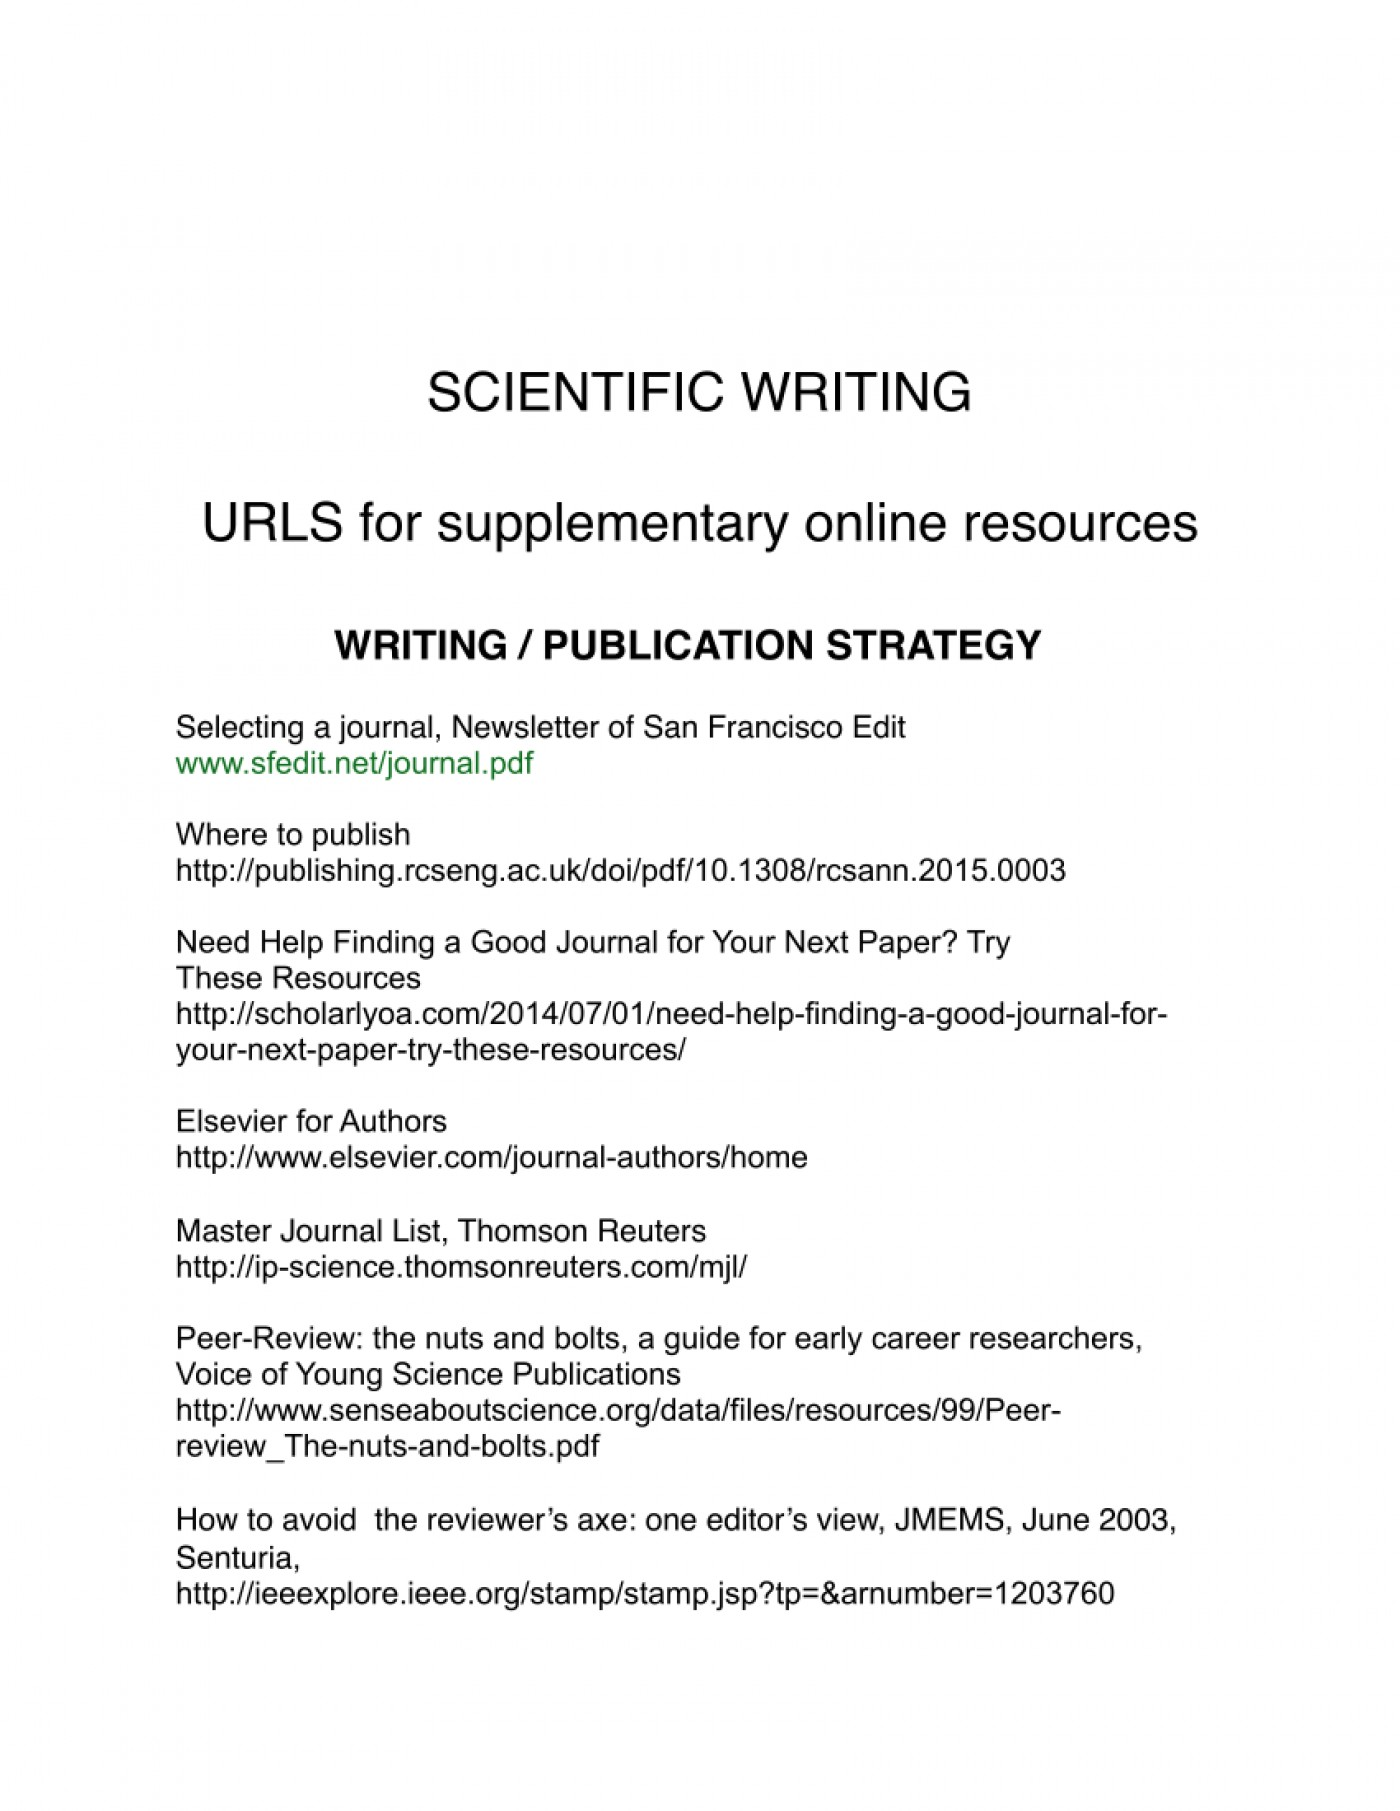 006 How To Write And Publish Scientific Research Paper Pdf Surprising A 1400